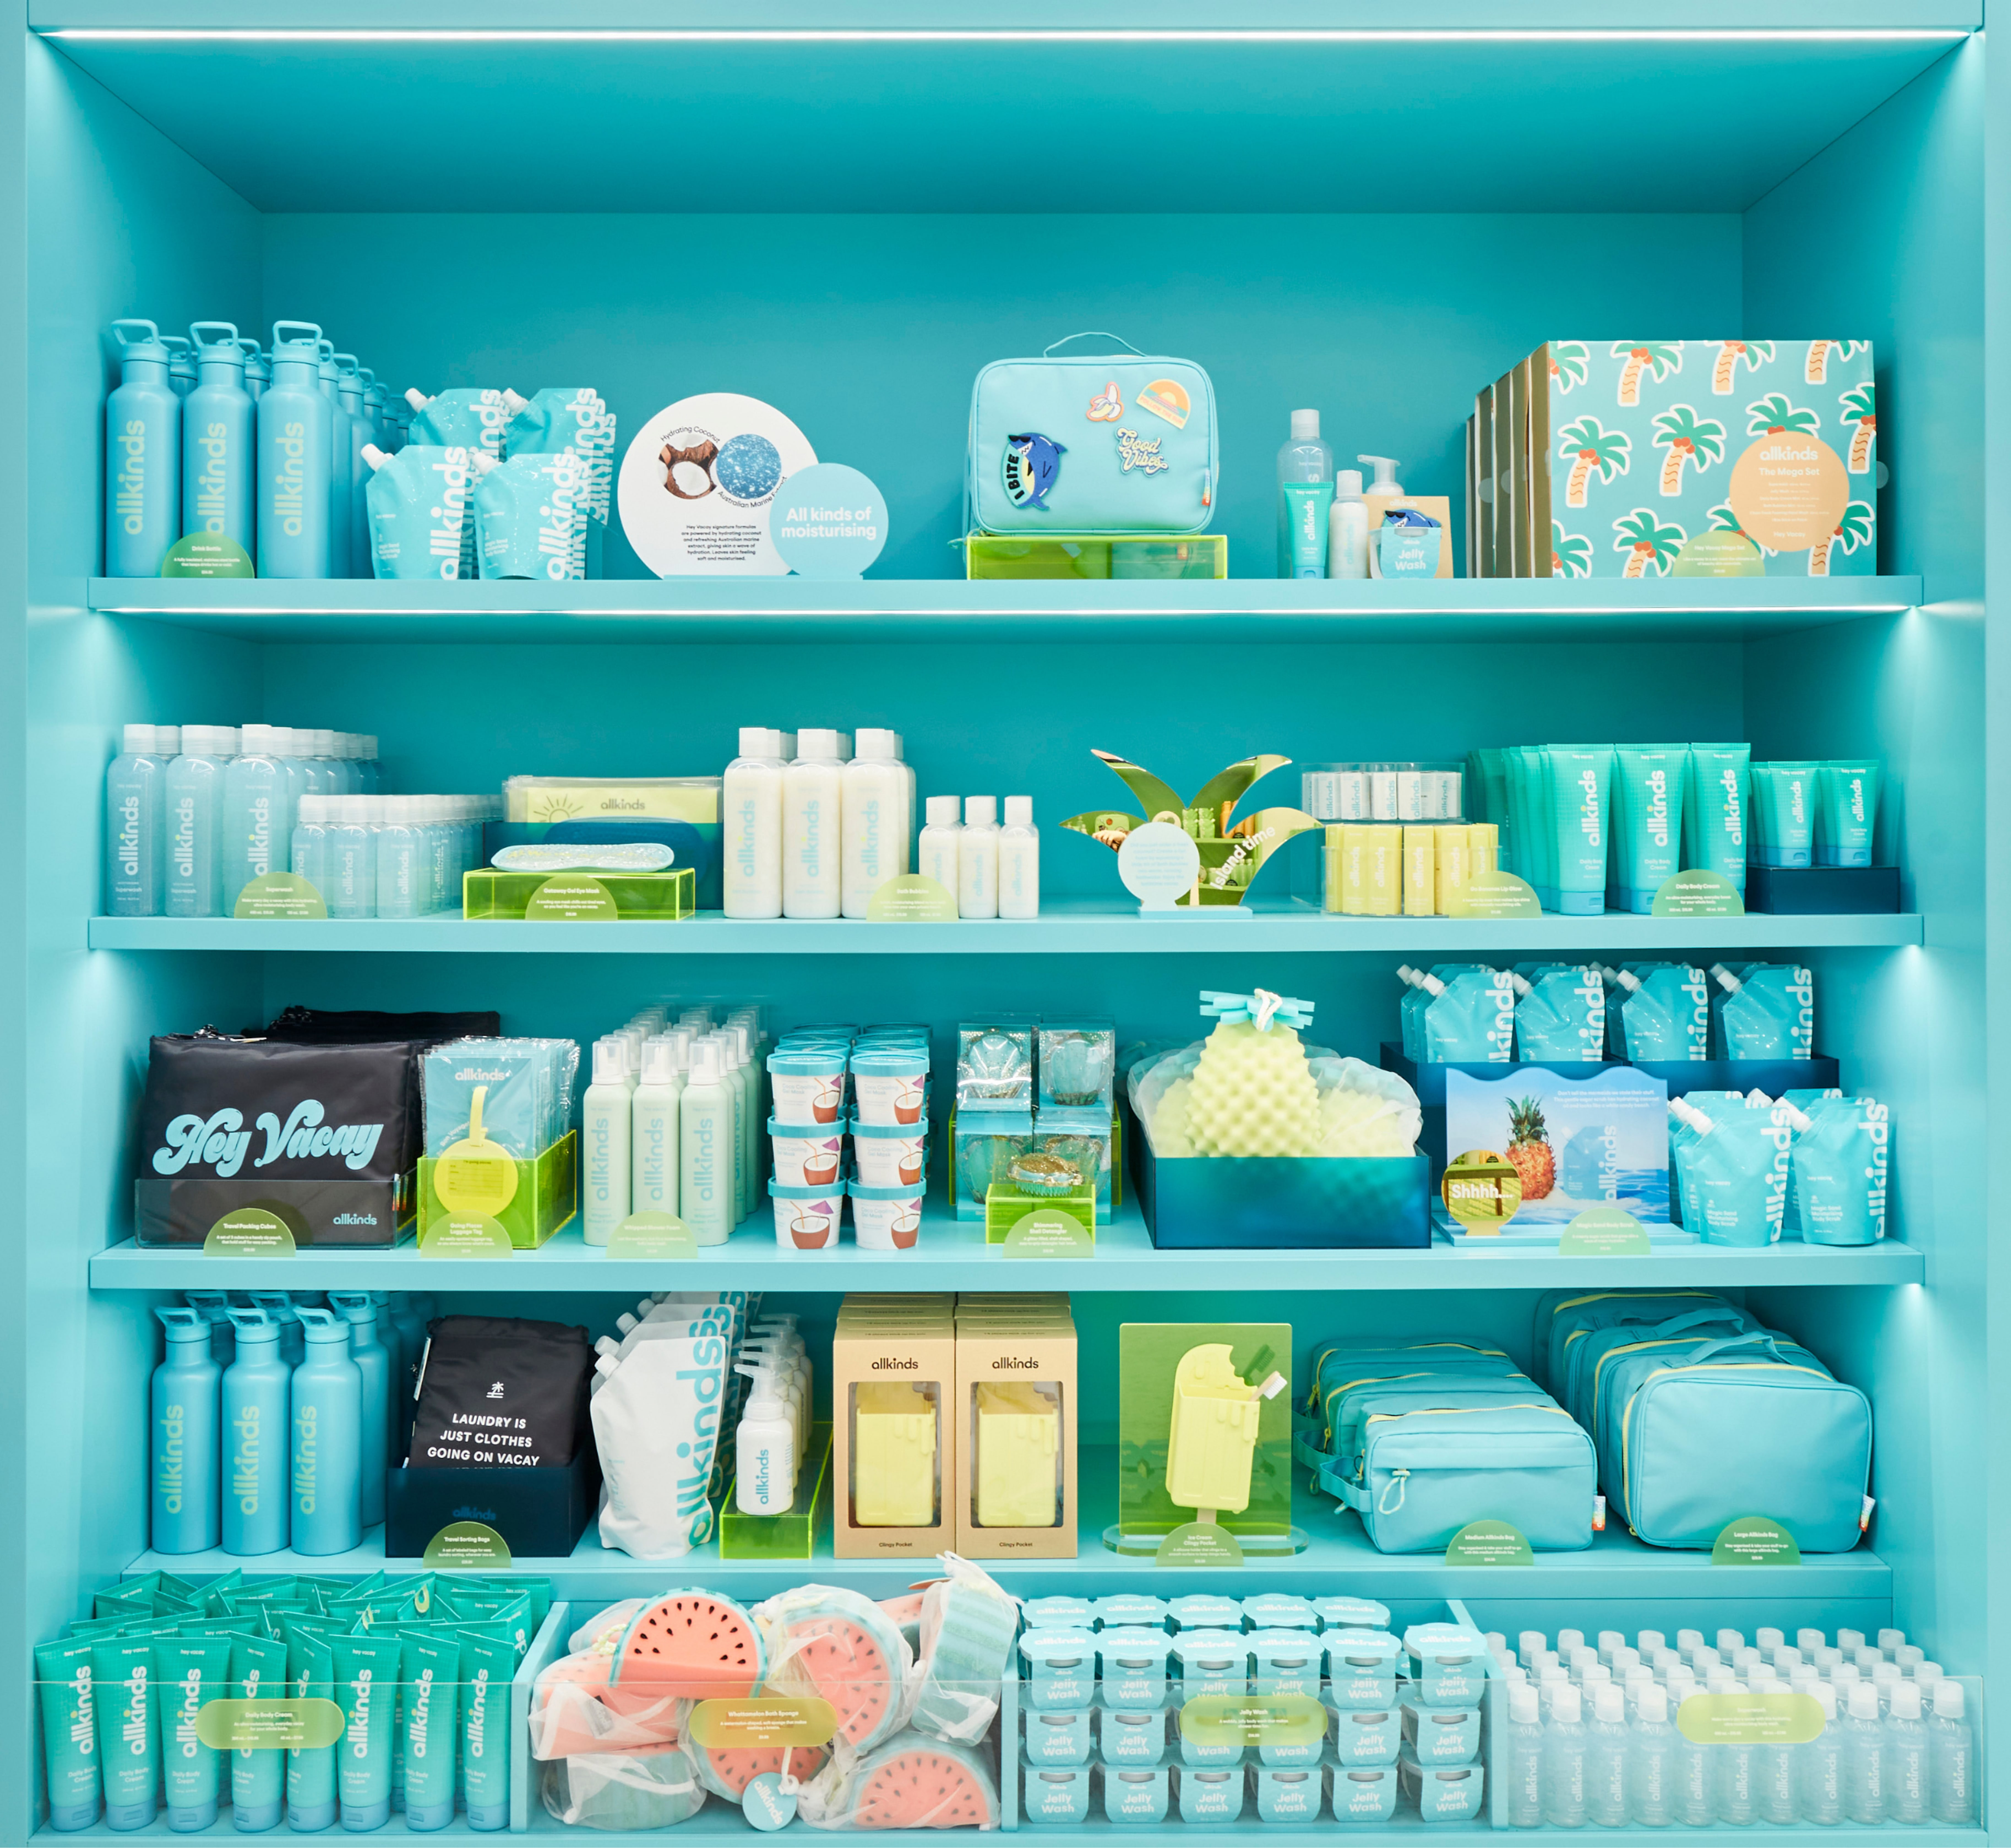 """Packaging and signage for Allkinds bath & body world """"Hey Vacay"""""""